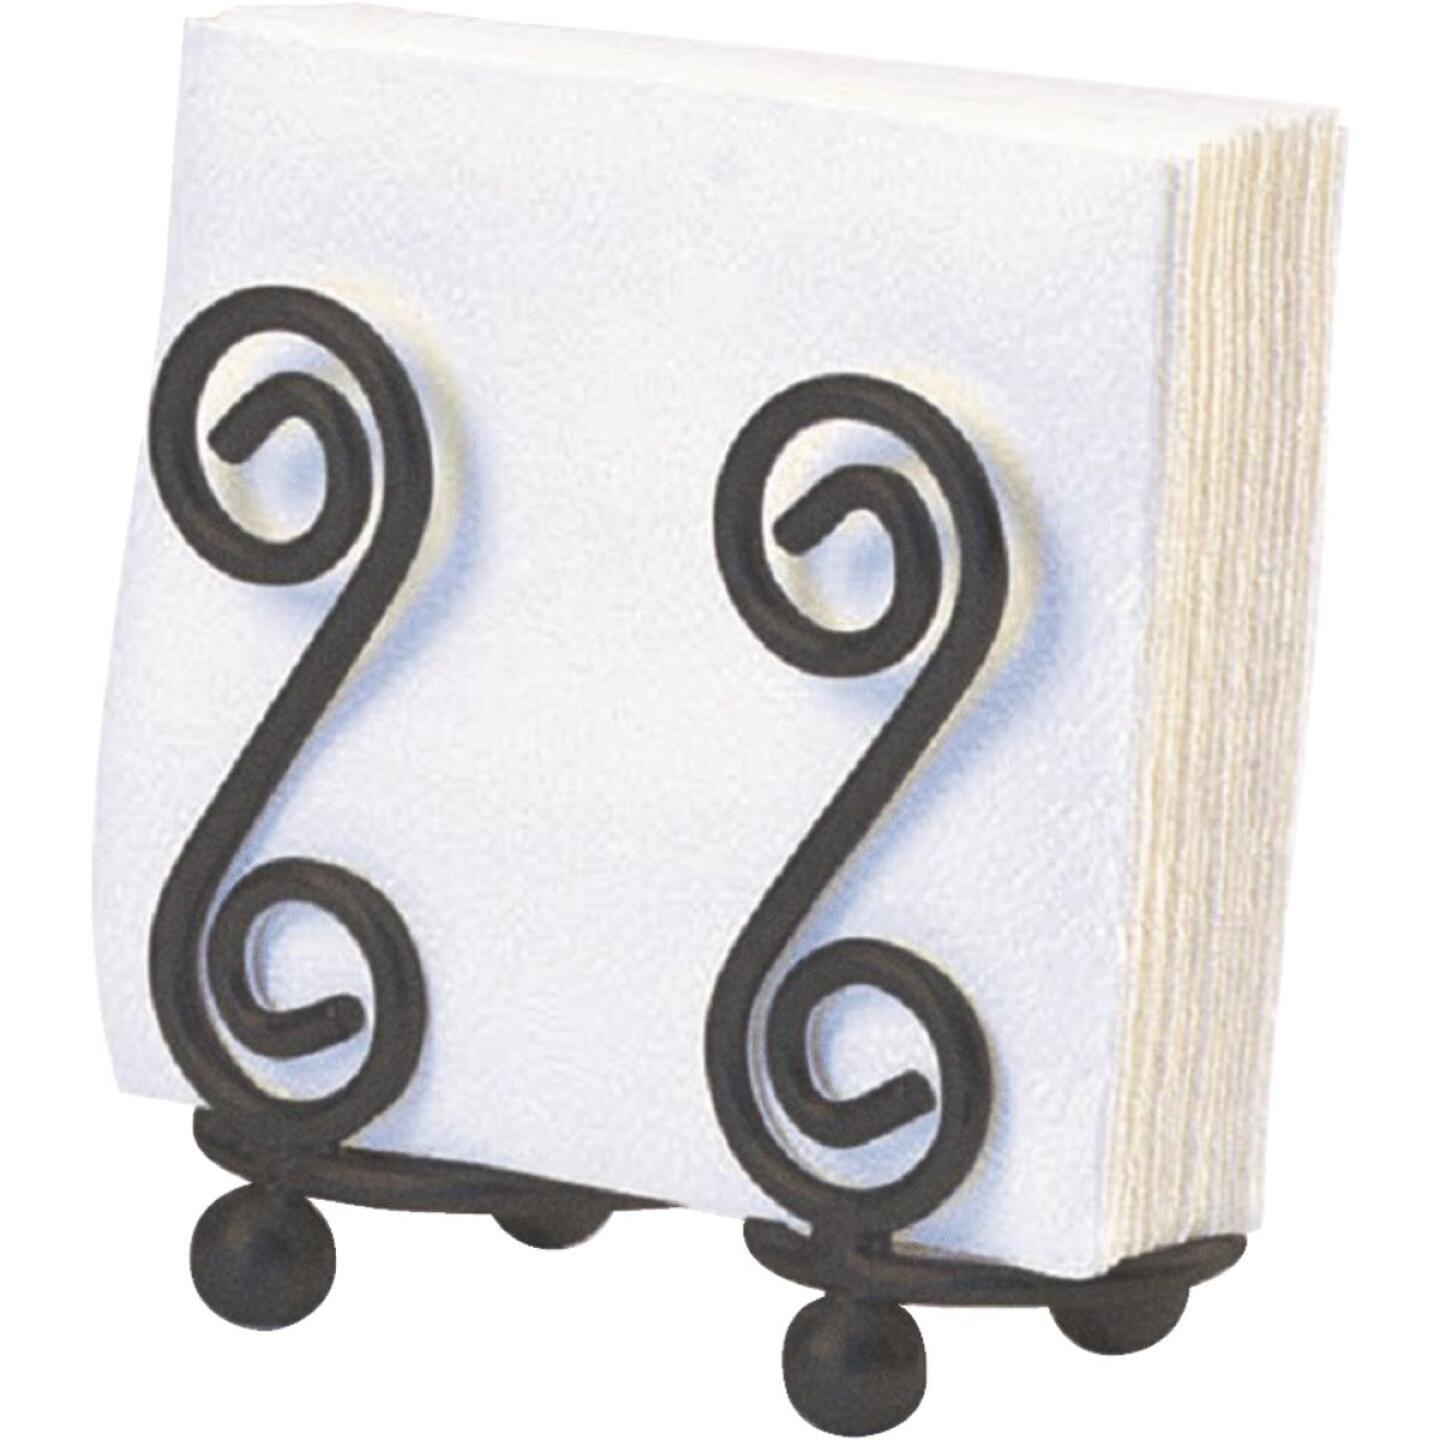 Spectrum S Scroll Design Napkin Holder Image 1